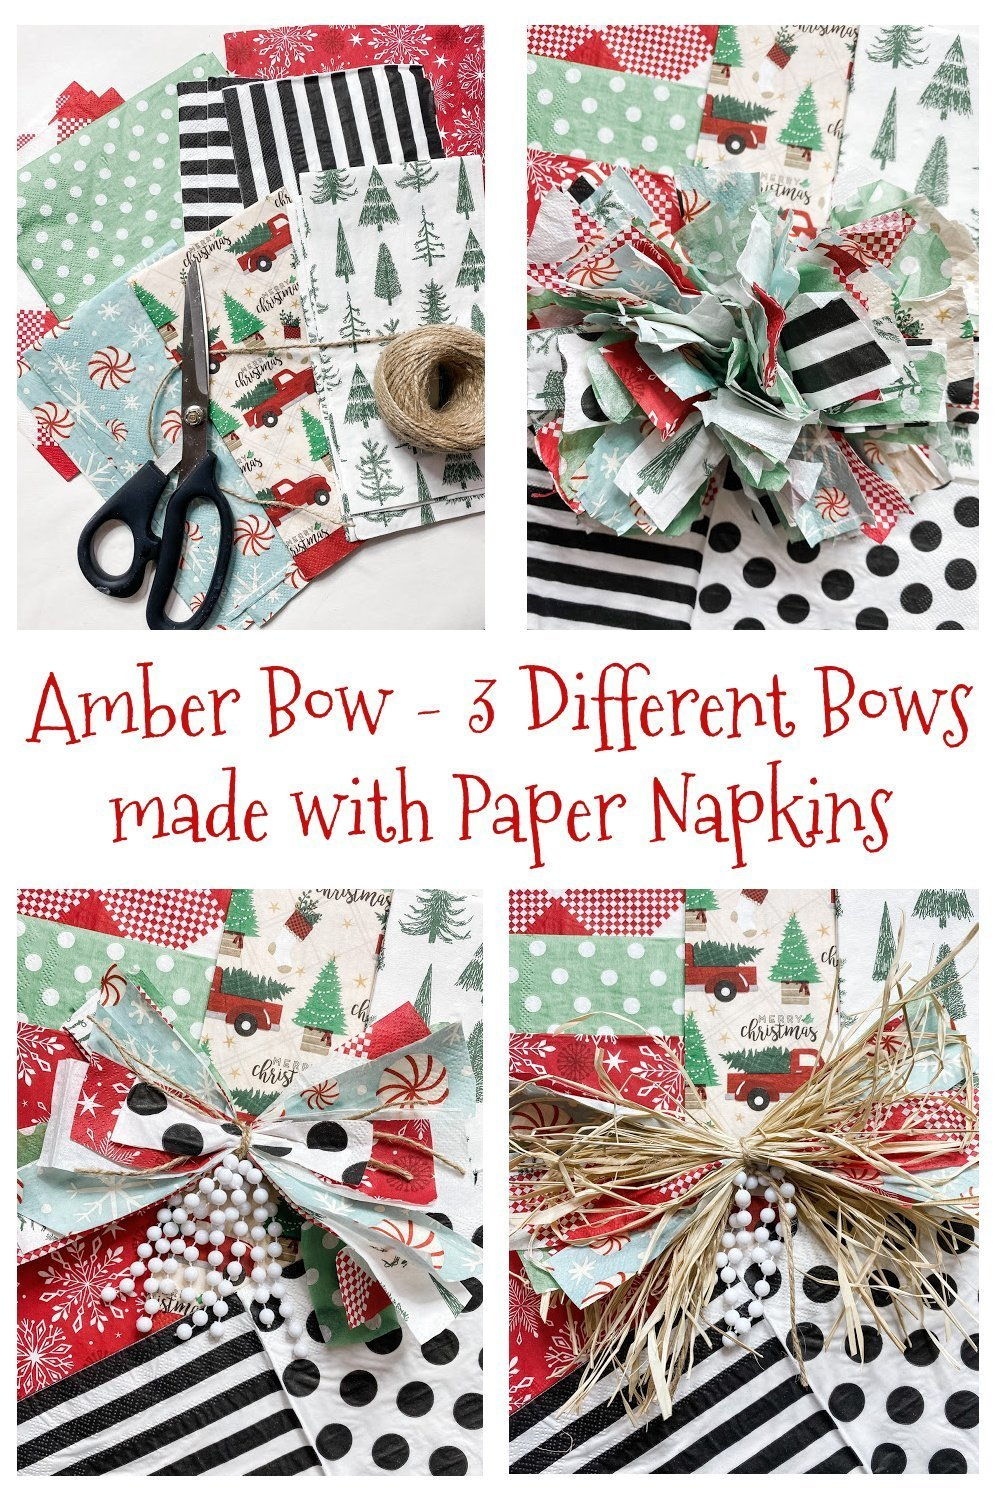 Simple Bow ideas using paper napkins